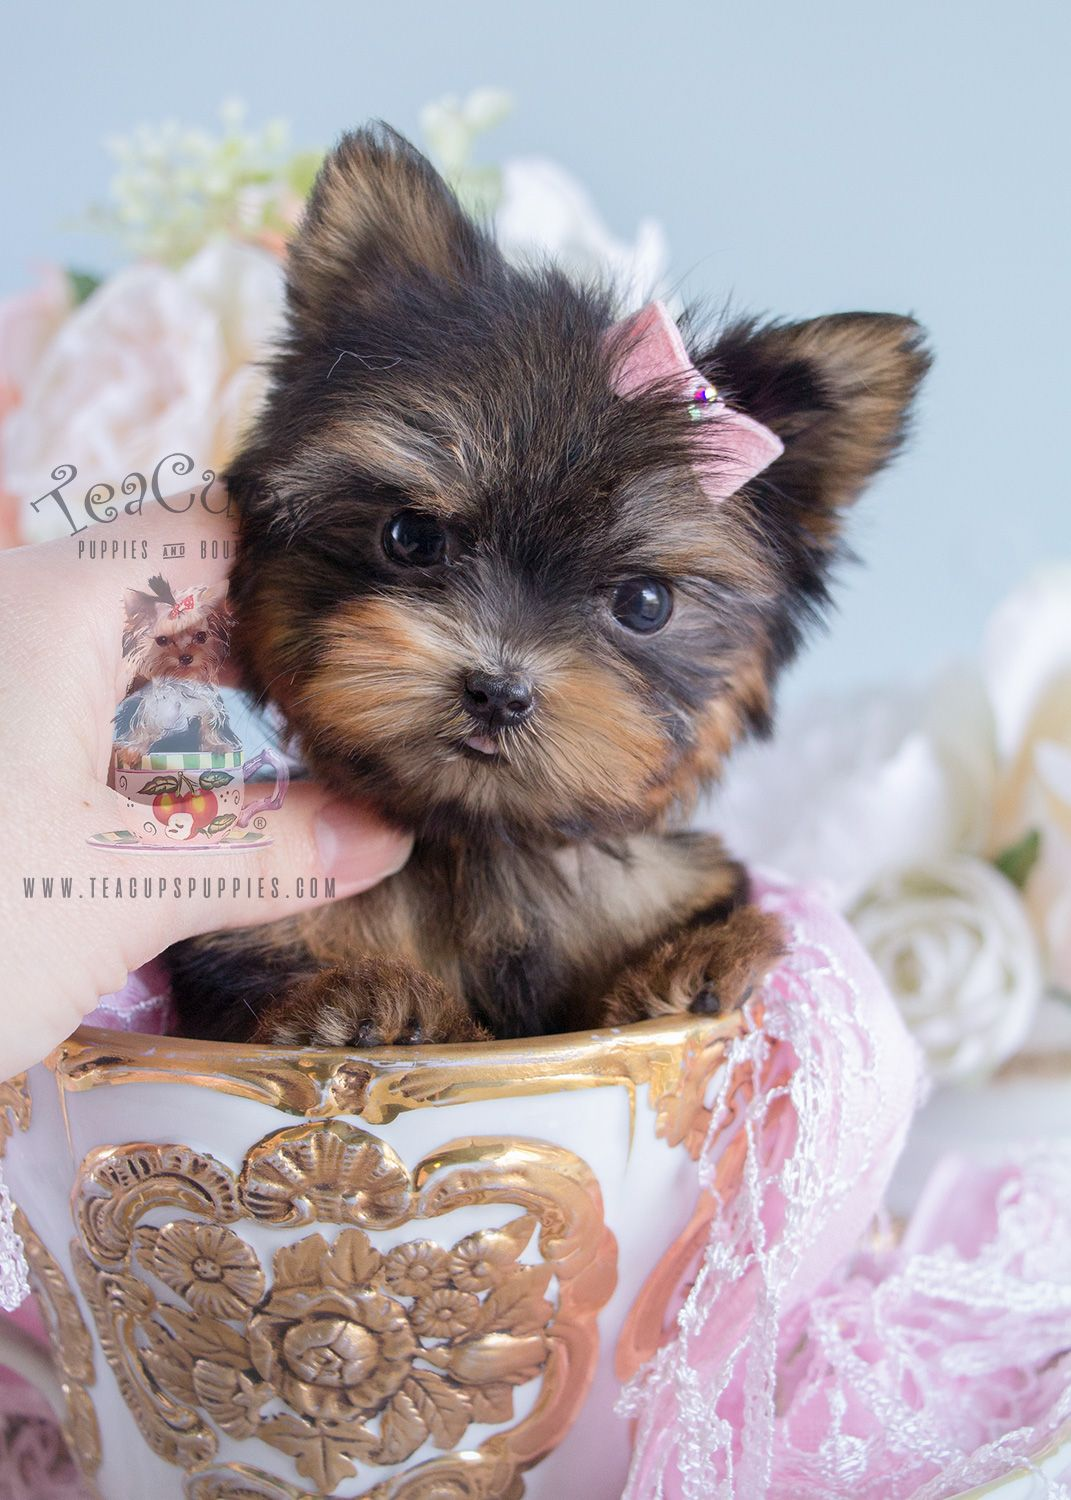 Teacup Yorkie Puppy For Sale 185 Yorkie puppy, Teacup